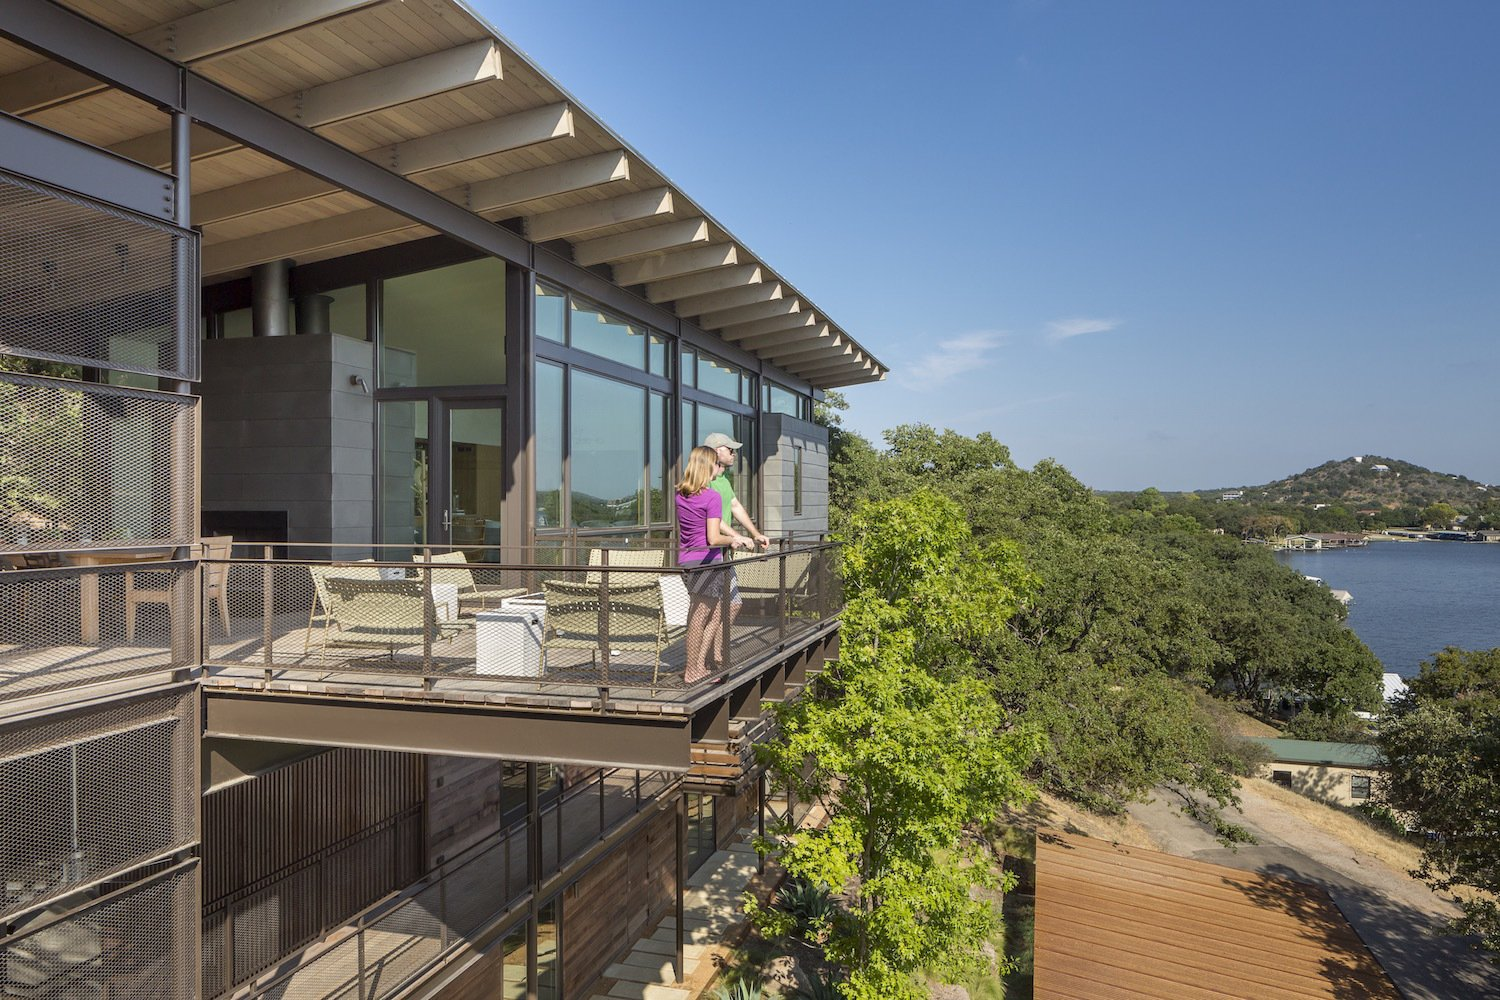 Outdoor, Wood Patio, Porch, Deck, and Trees  Photo 6 of 11 in A Spectacular Lakeside Retreat in Texas Embraces the Outdoors